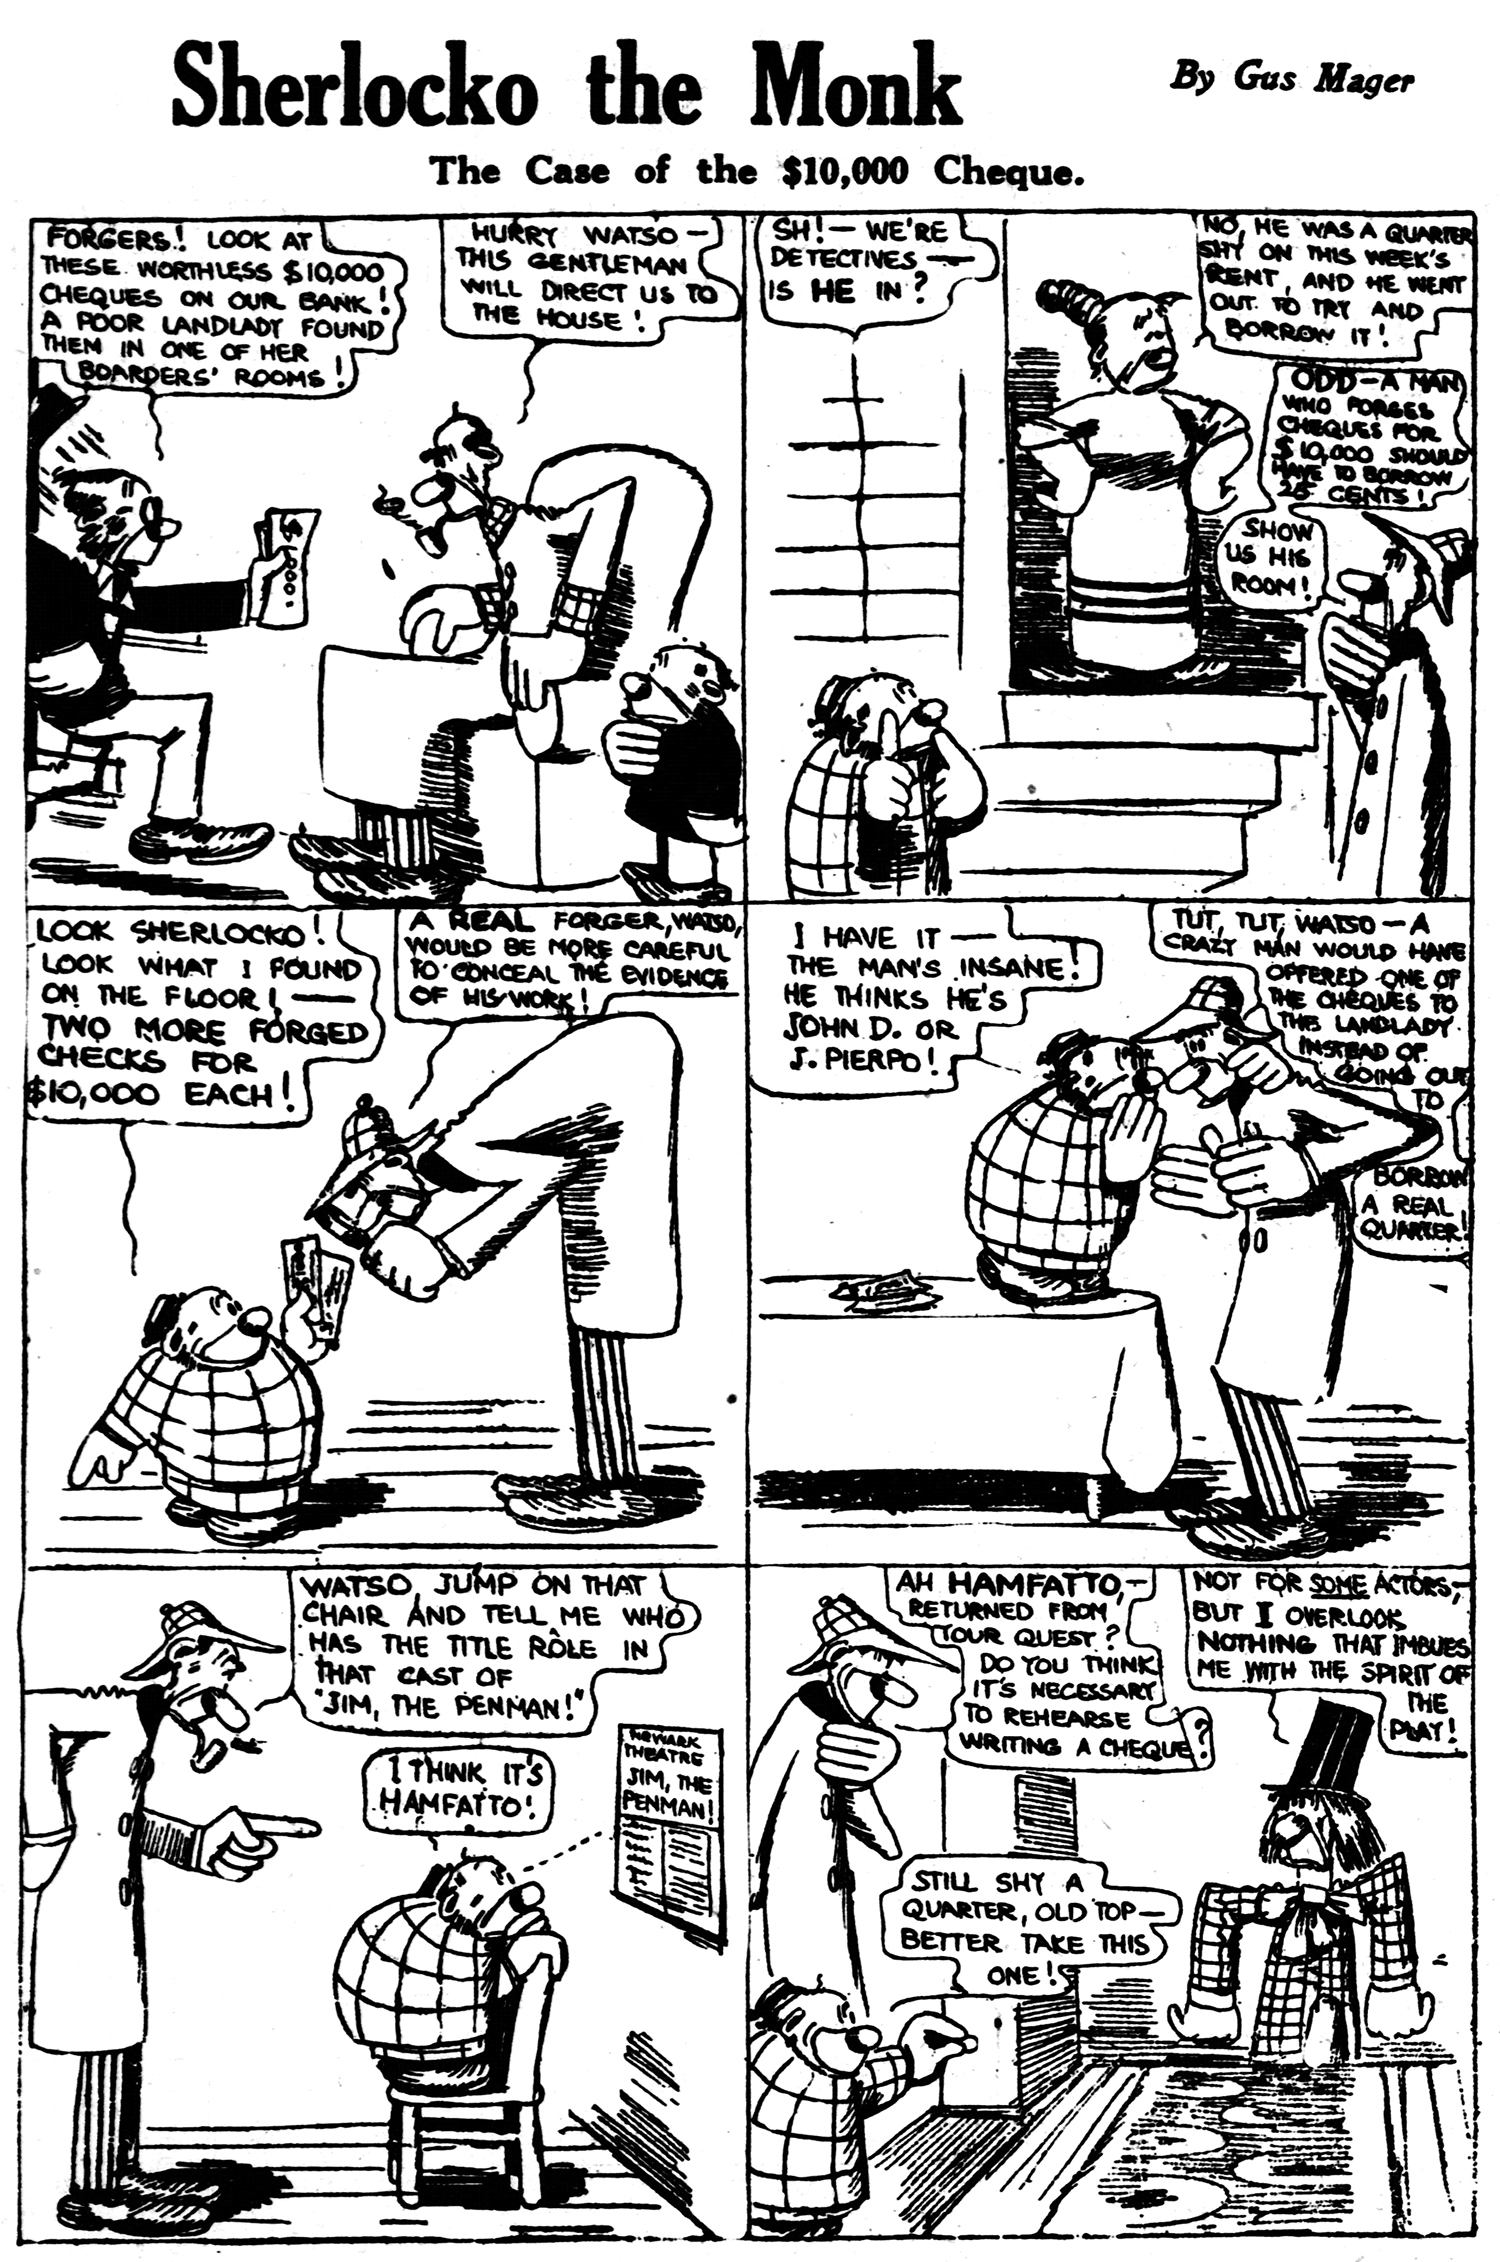 Sherlocko the Monk: The Case of the $10,000 Cheque (October 10, 1911)